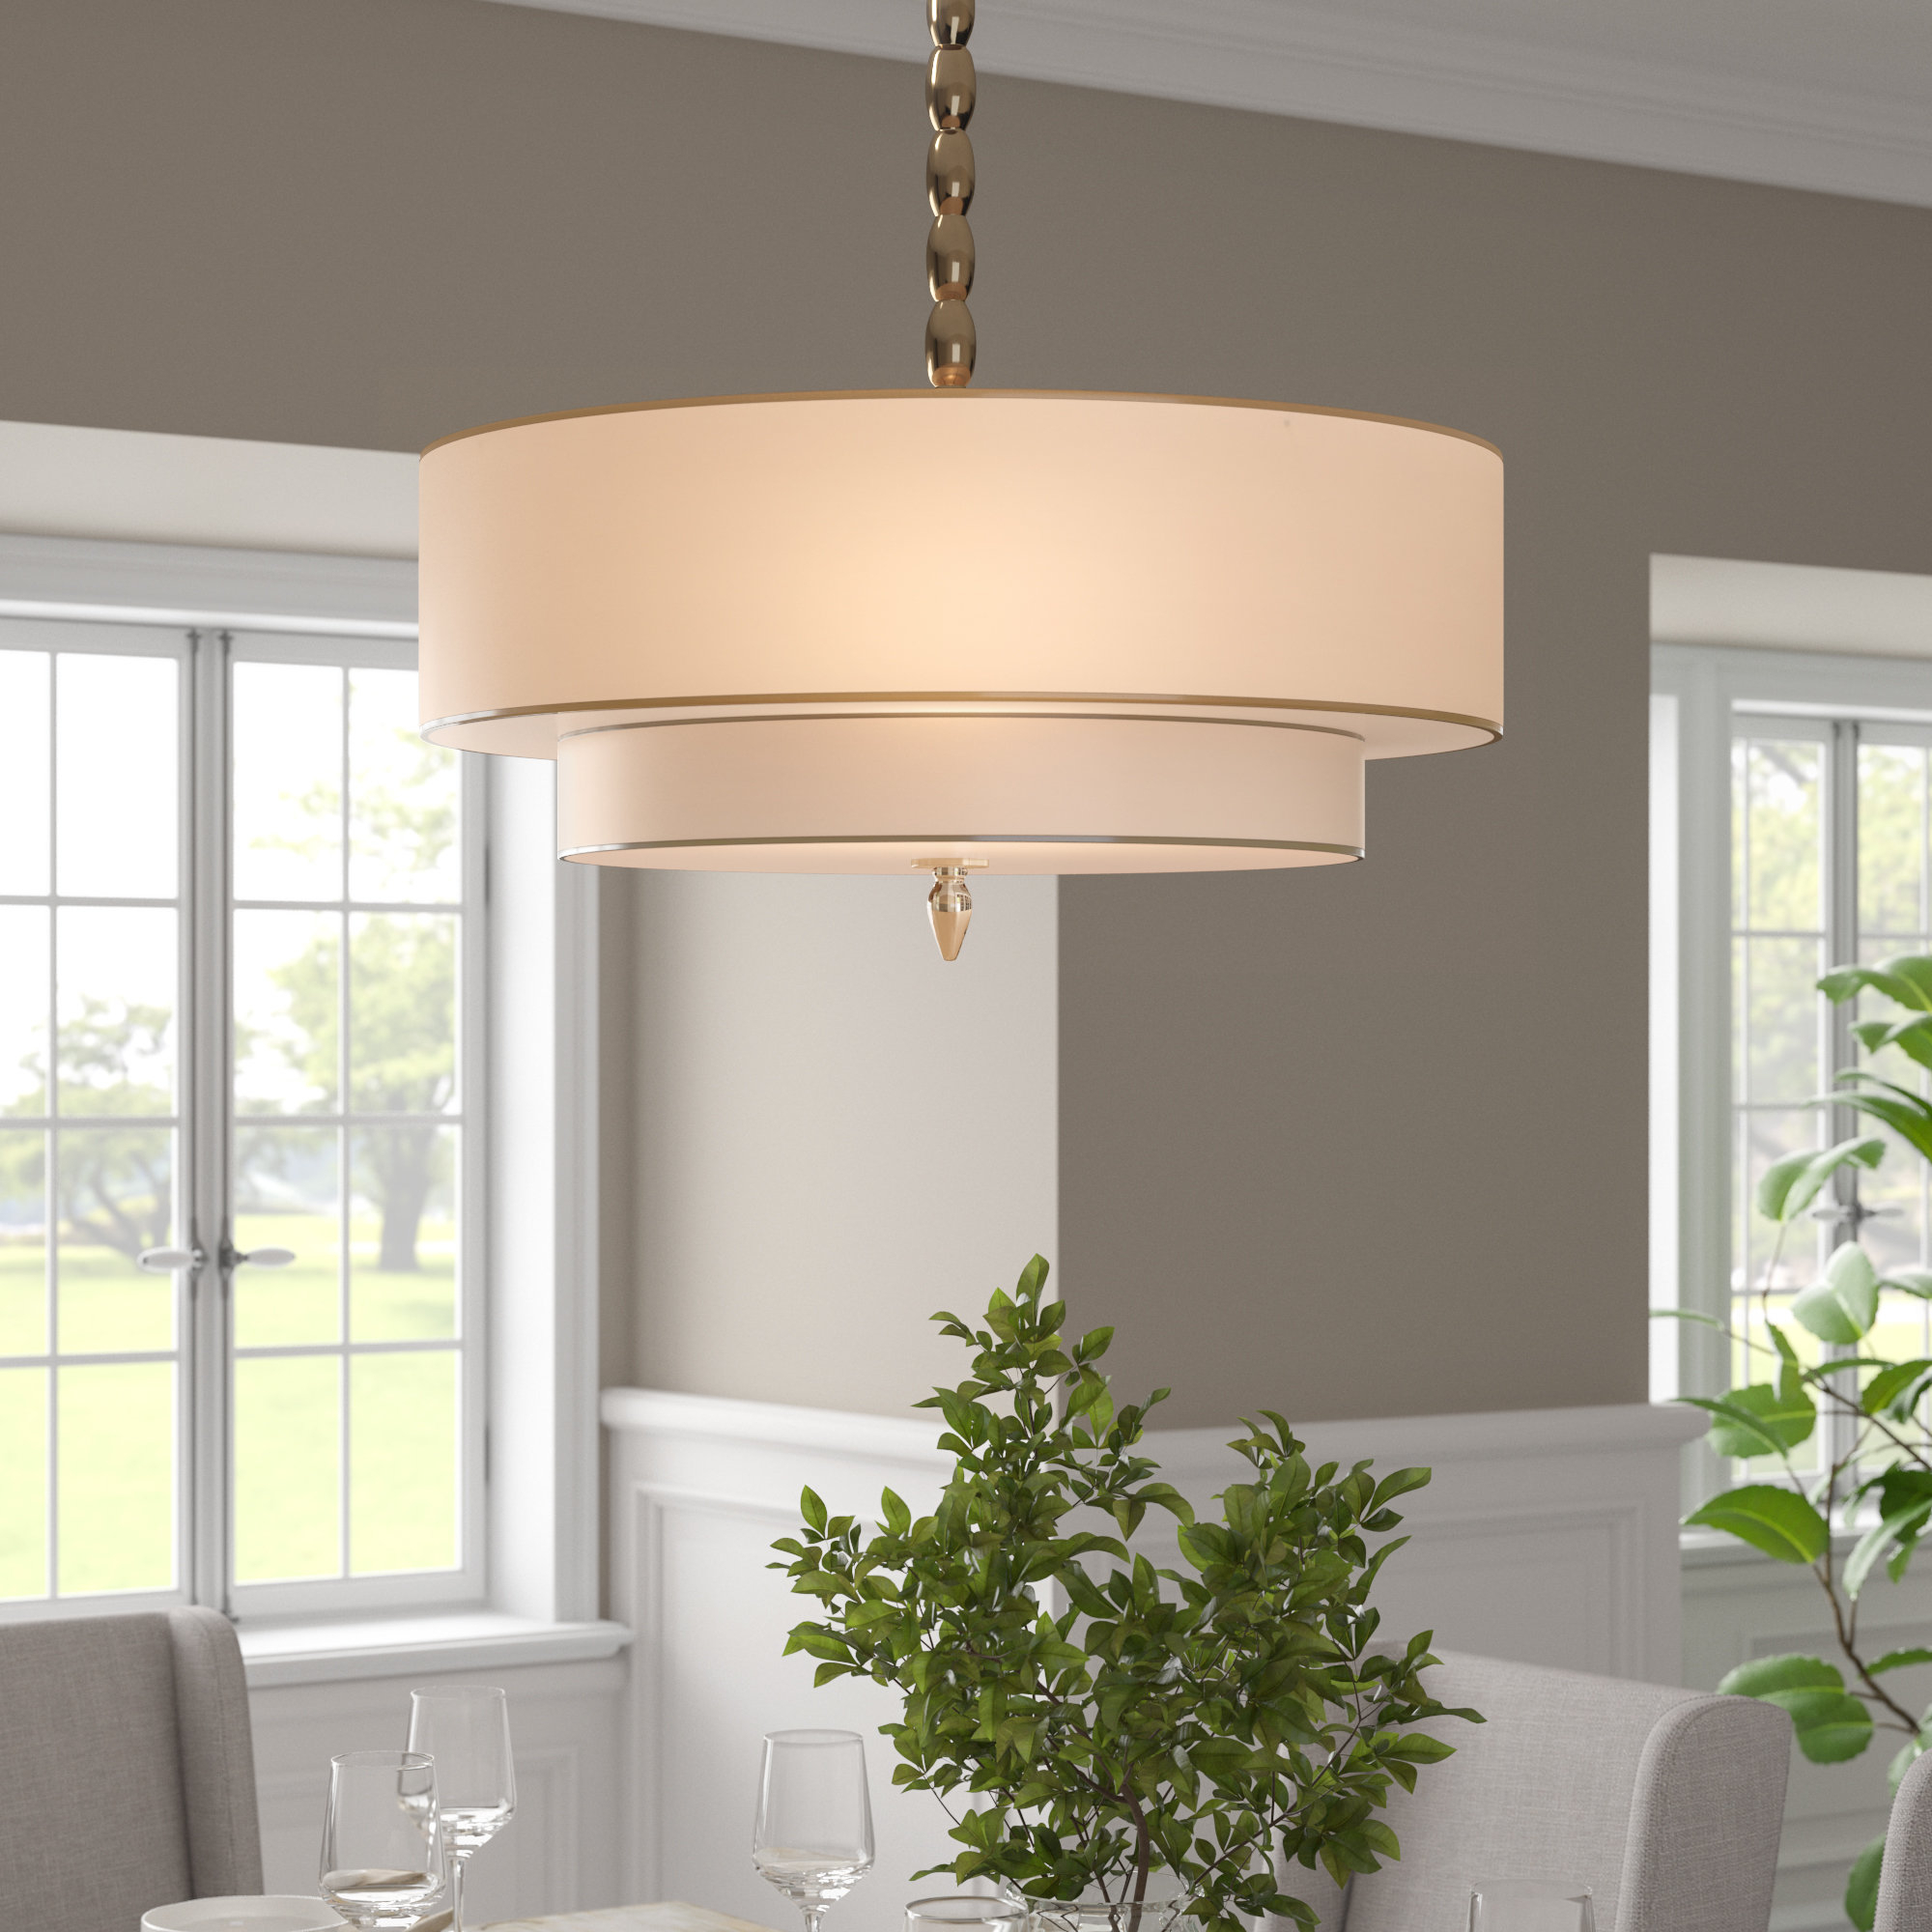 Most Recent Stauffer 5 Light Drum Chandelier In Alina 5 Light Drum Chandeliers (View 22 of 25)